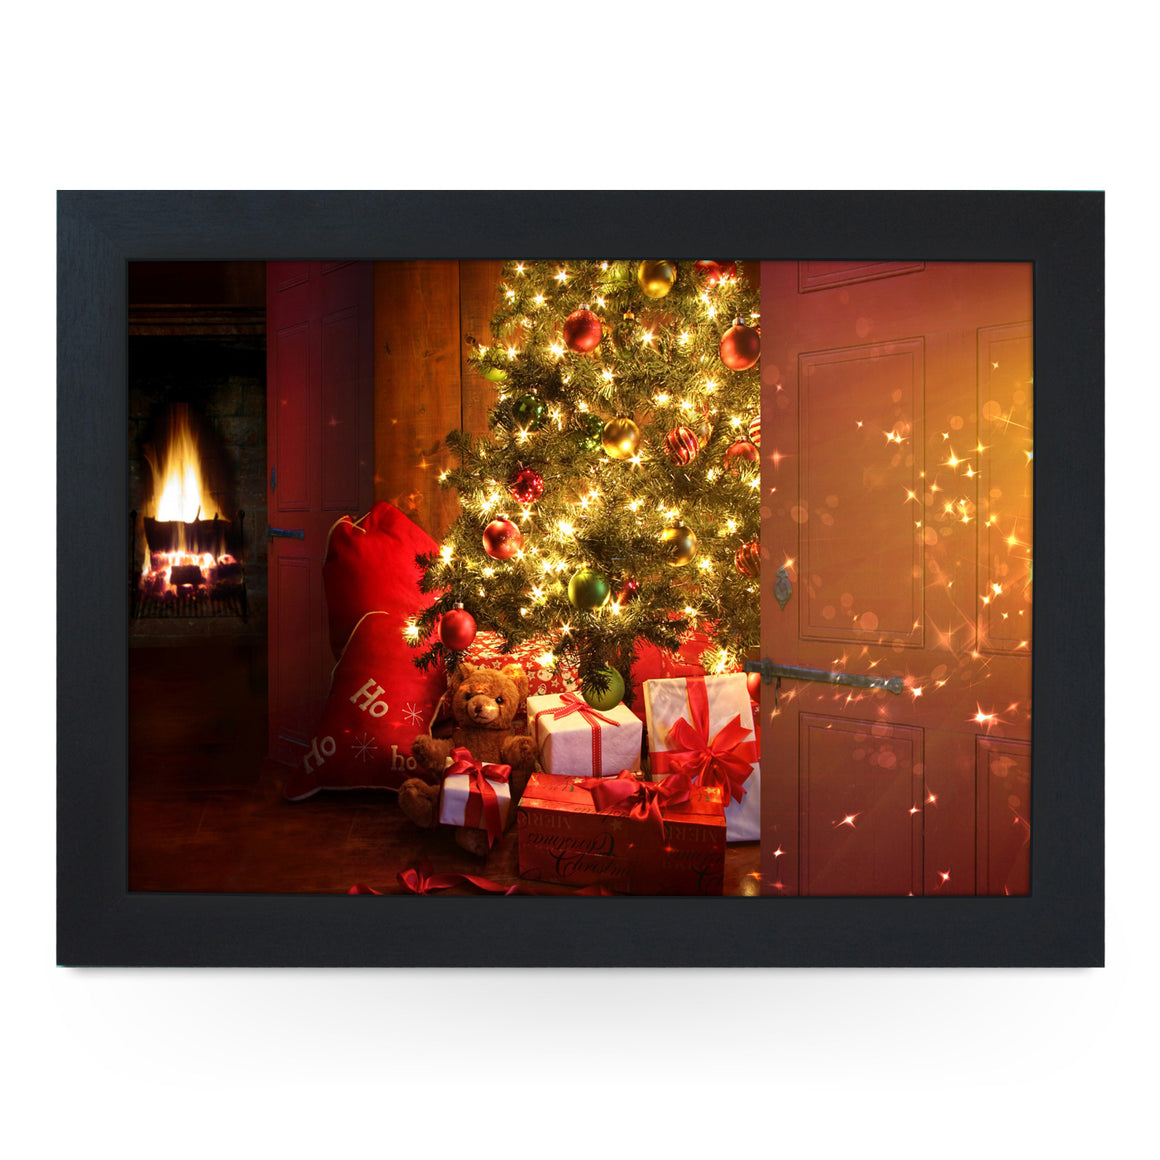 Presents Under The Christmas Tree Lap Tray - L0023